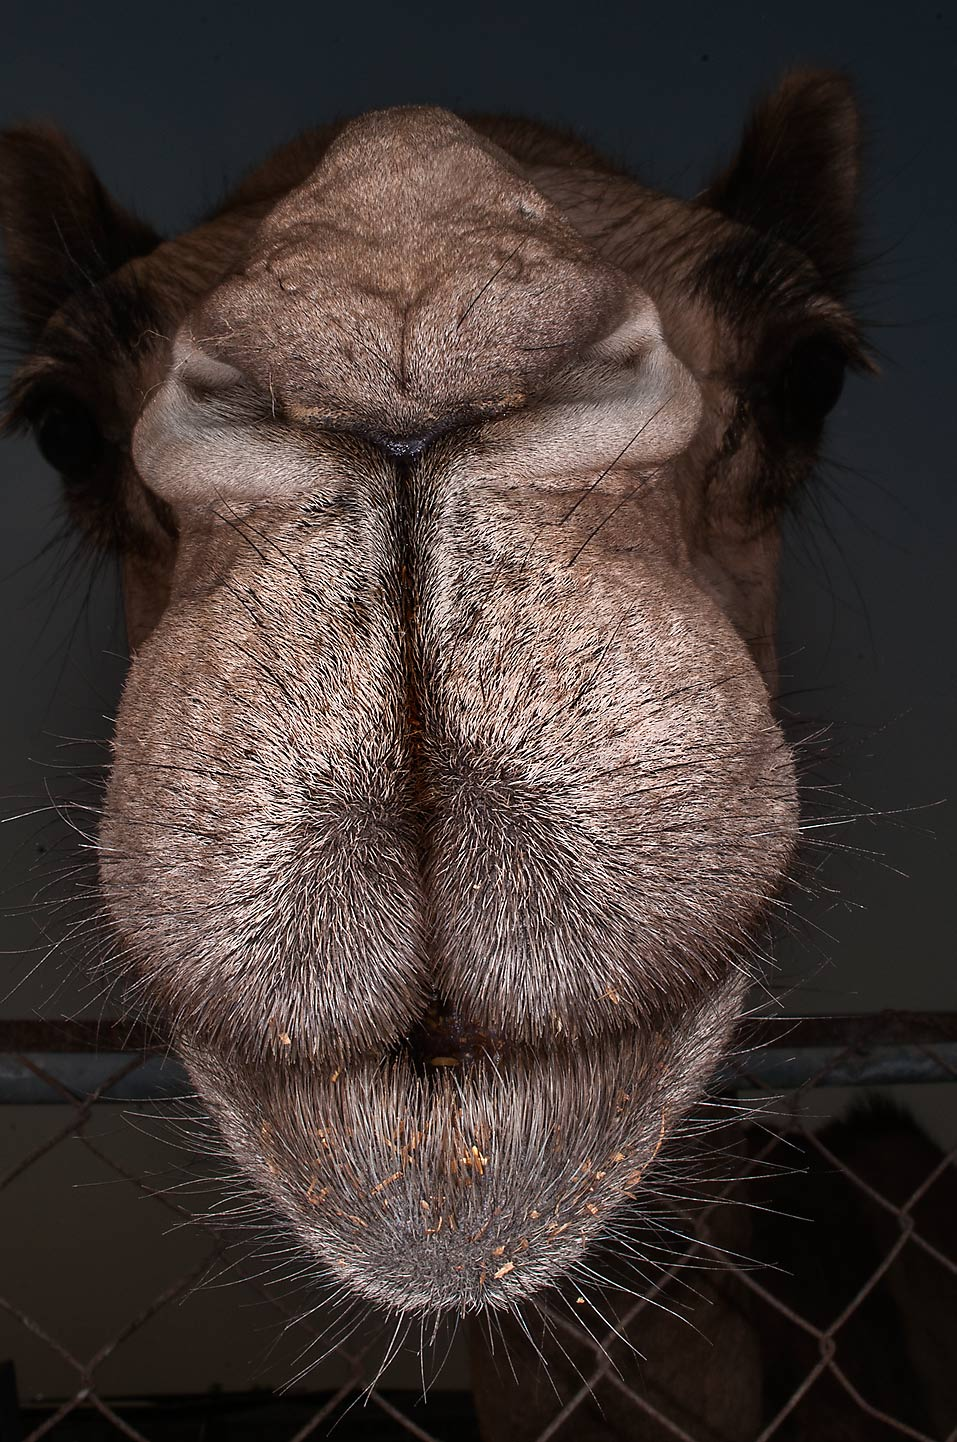 Camel's head hanging over a fence in Livestock Market, Wholesale Markets area. Doha, Qatar